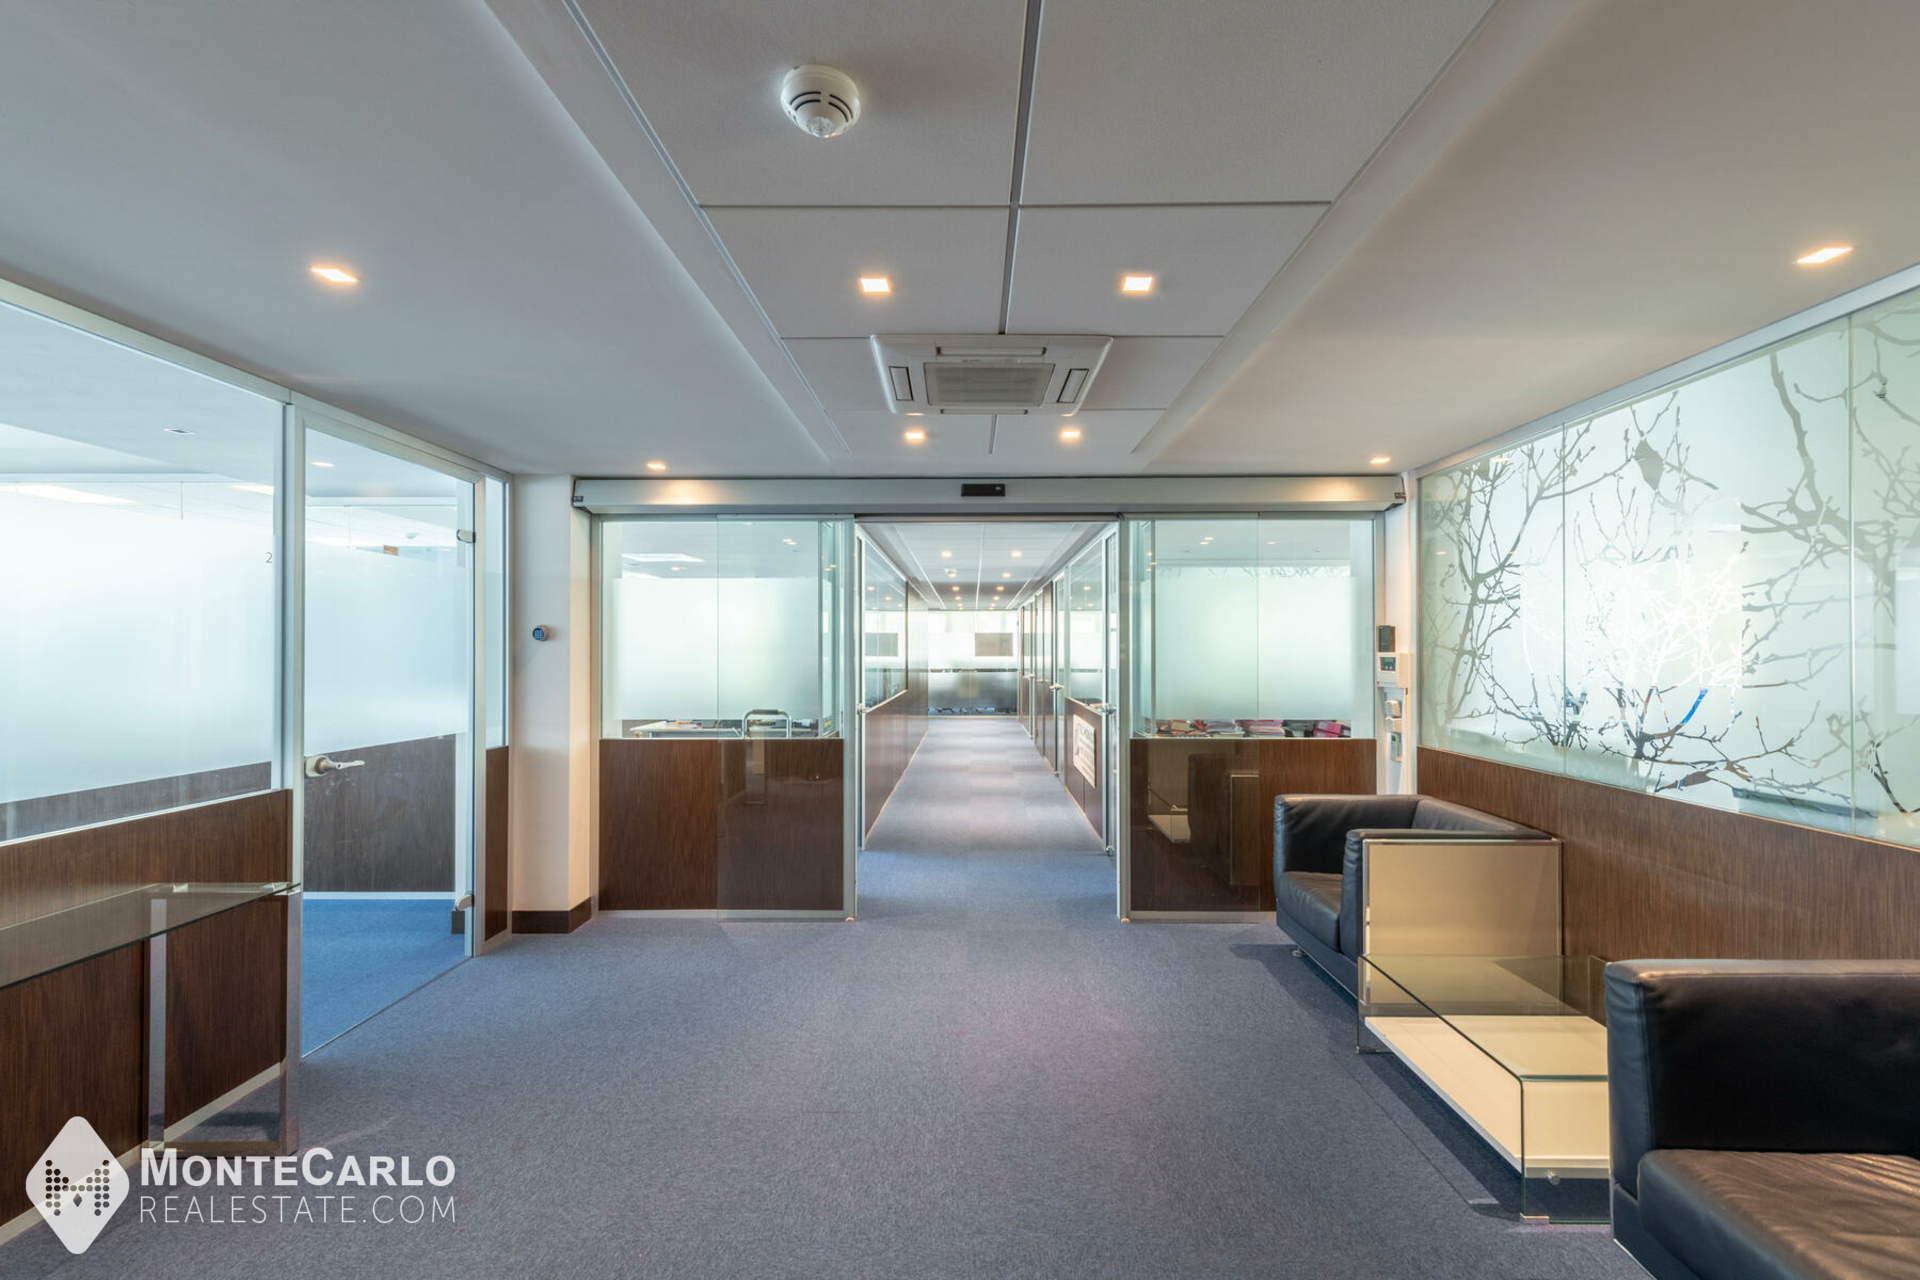 For sale Le Thalès - Office : 10 600 000 €   Monte-Carlo Real Estate [MIMTHALES]